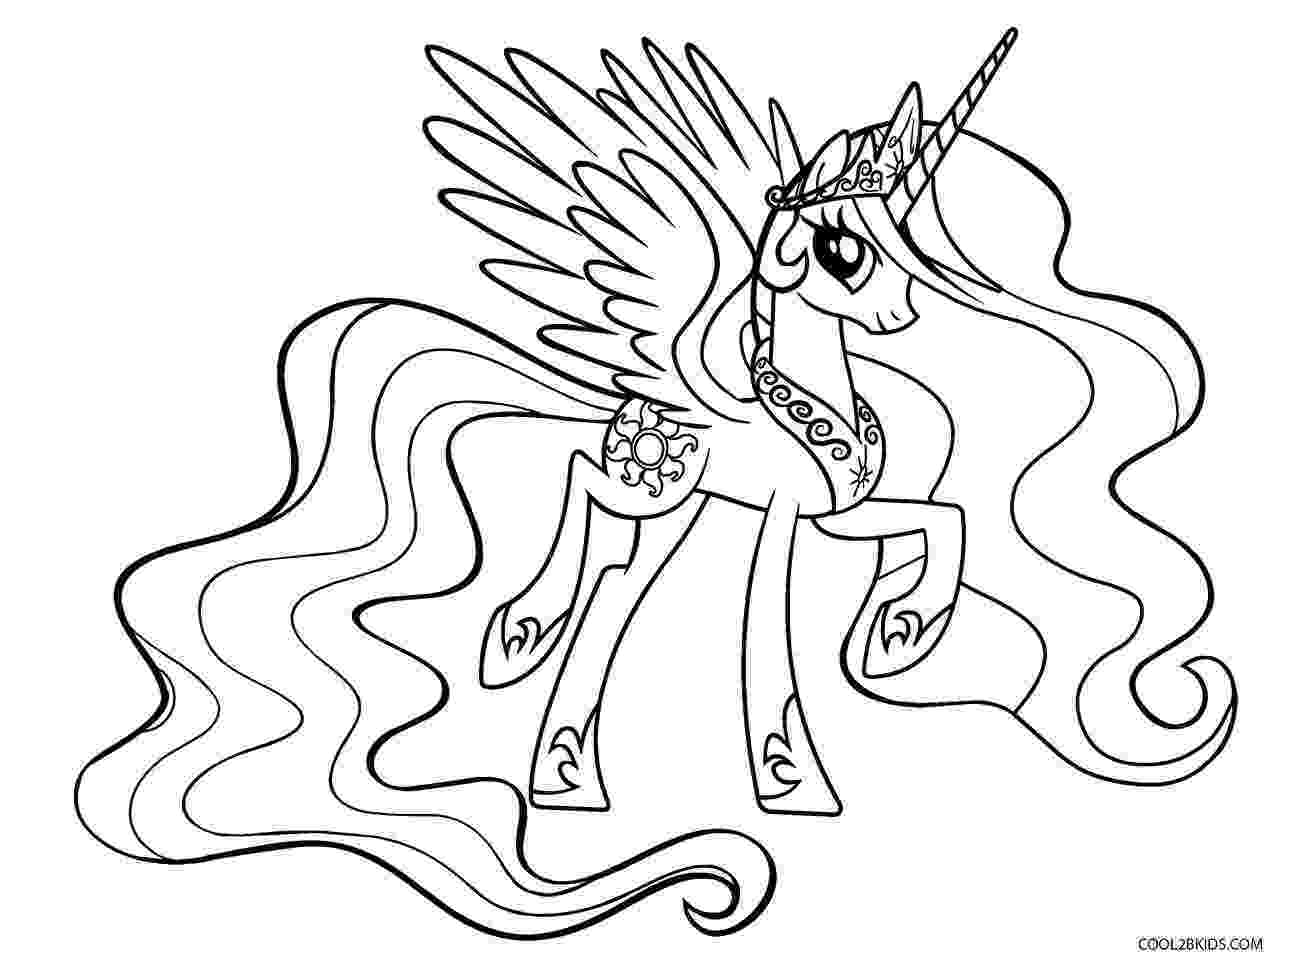 my pony coloring pages free printable my little pony coloring pages for kids coloring pony my pages